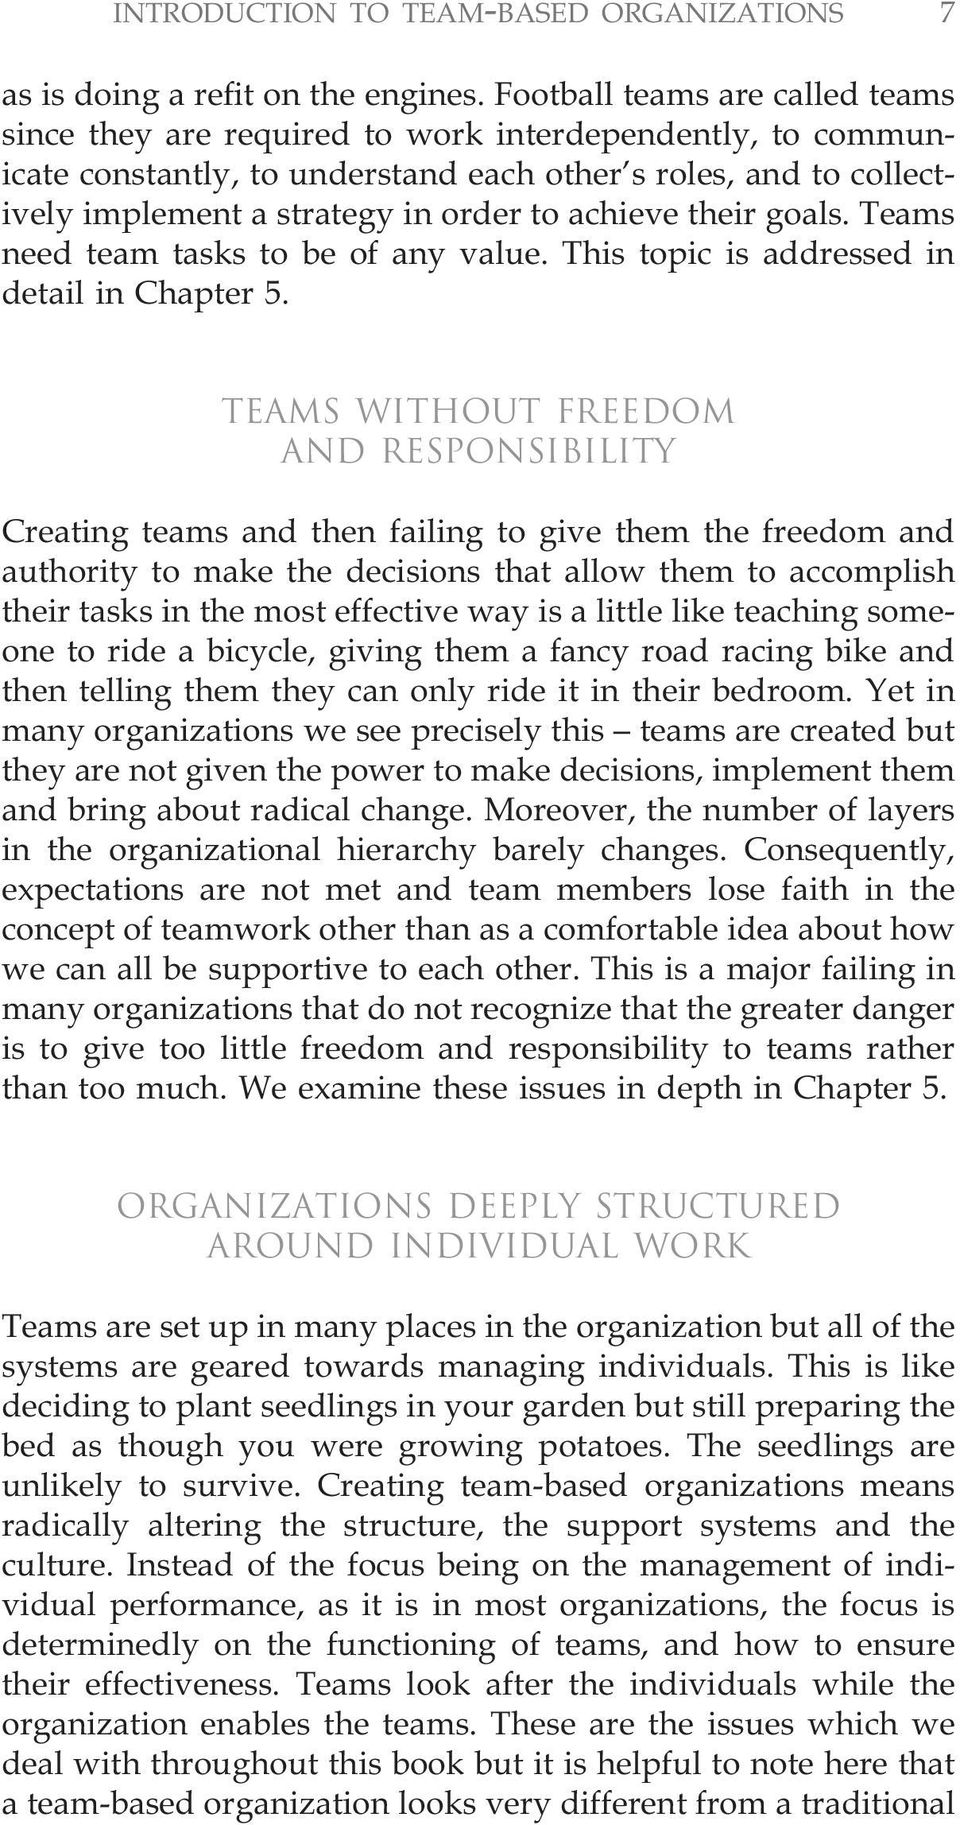 achieve their goals. Teams need team tasks to be of any value. This topic is addressed in detail in Chapter 5.